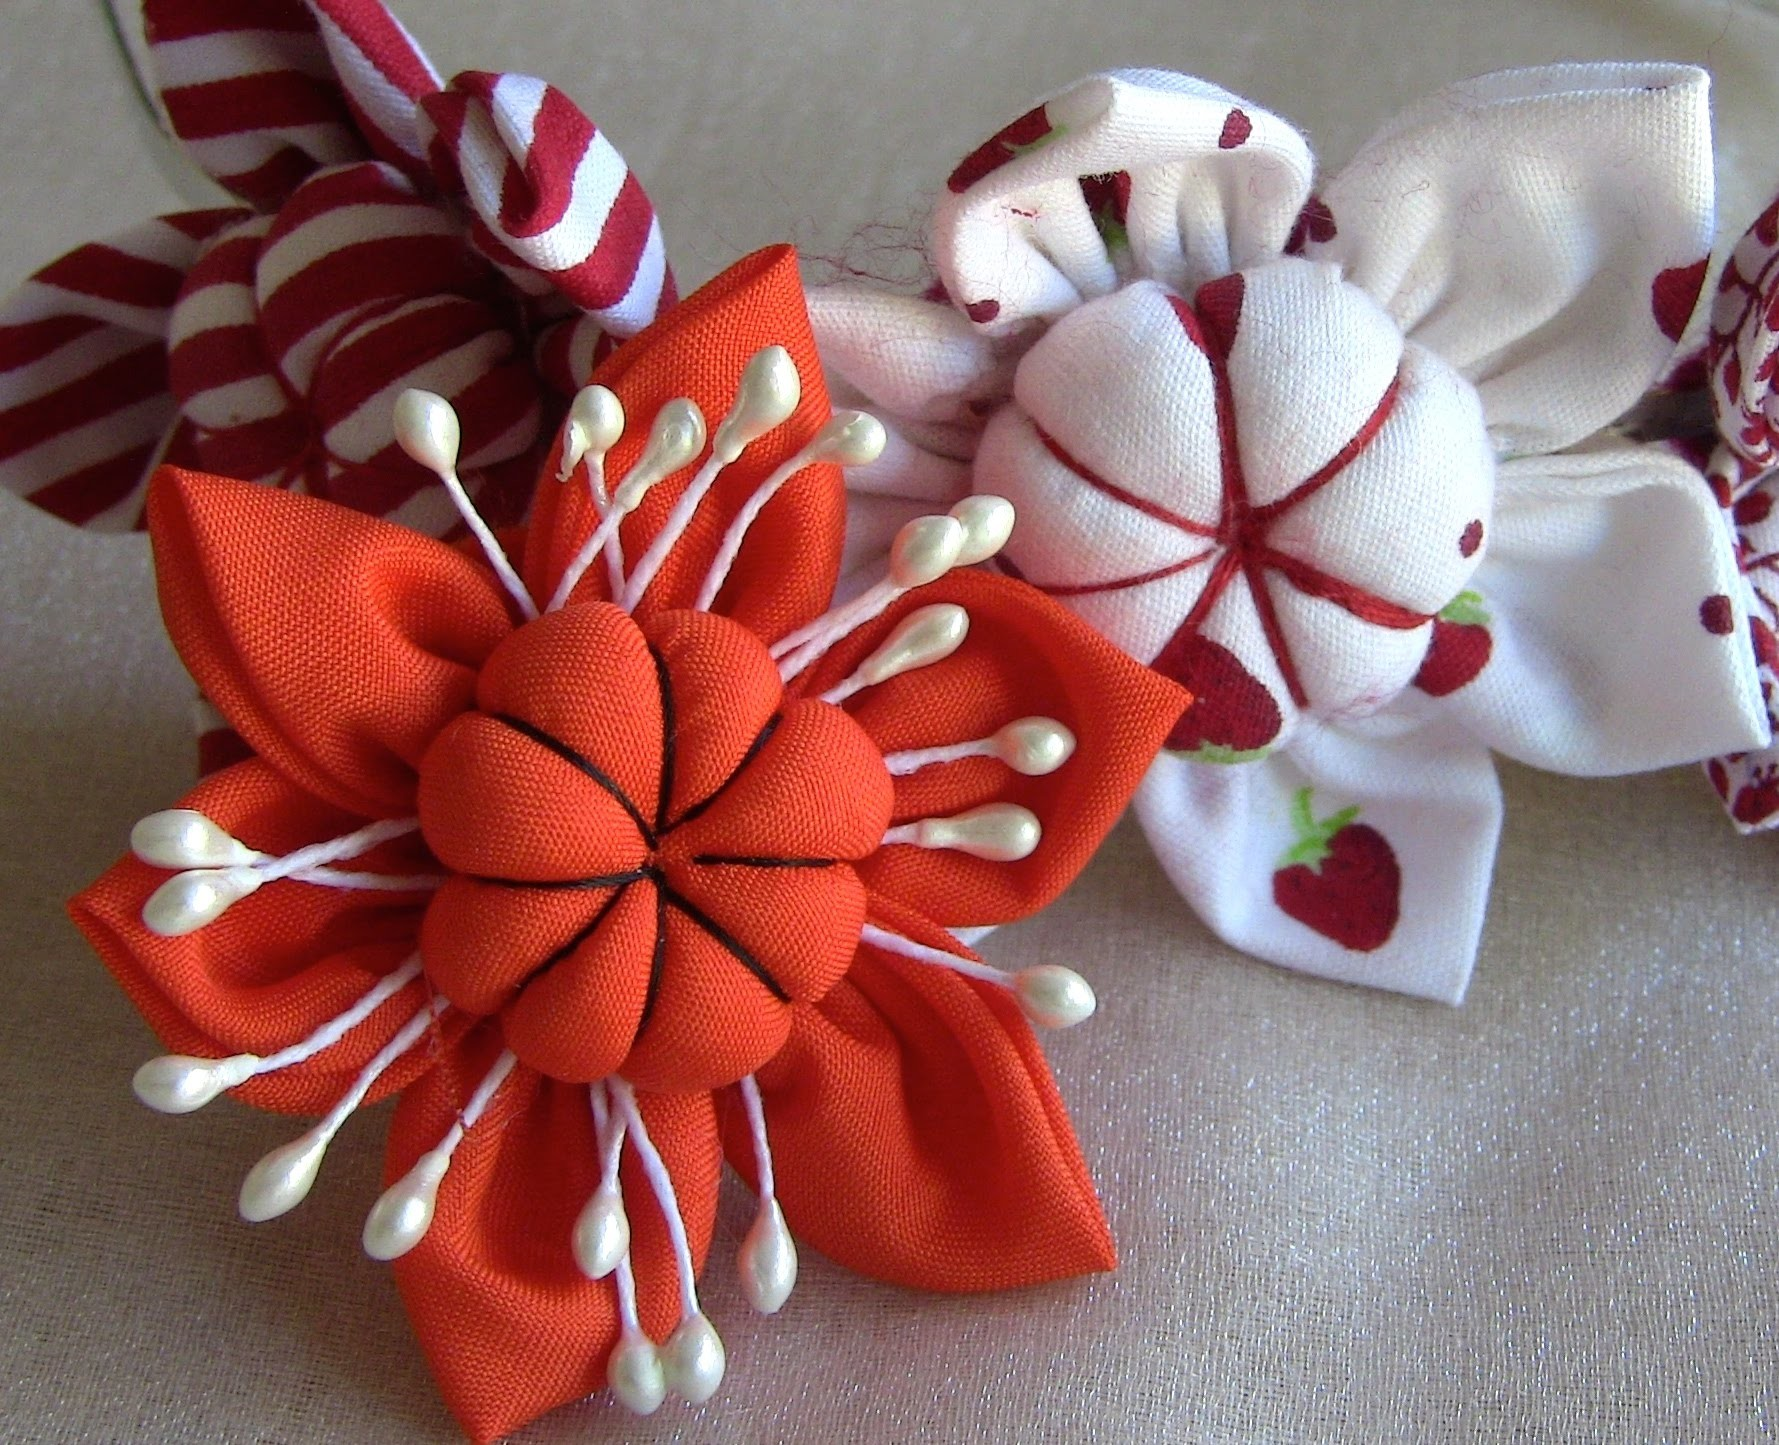 Flor em tecido com miolo acochoado-HOW TO MAKE ROLLED RIBBON ROSES- fabric flowers